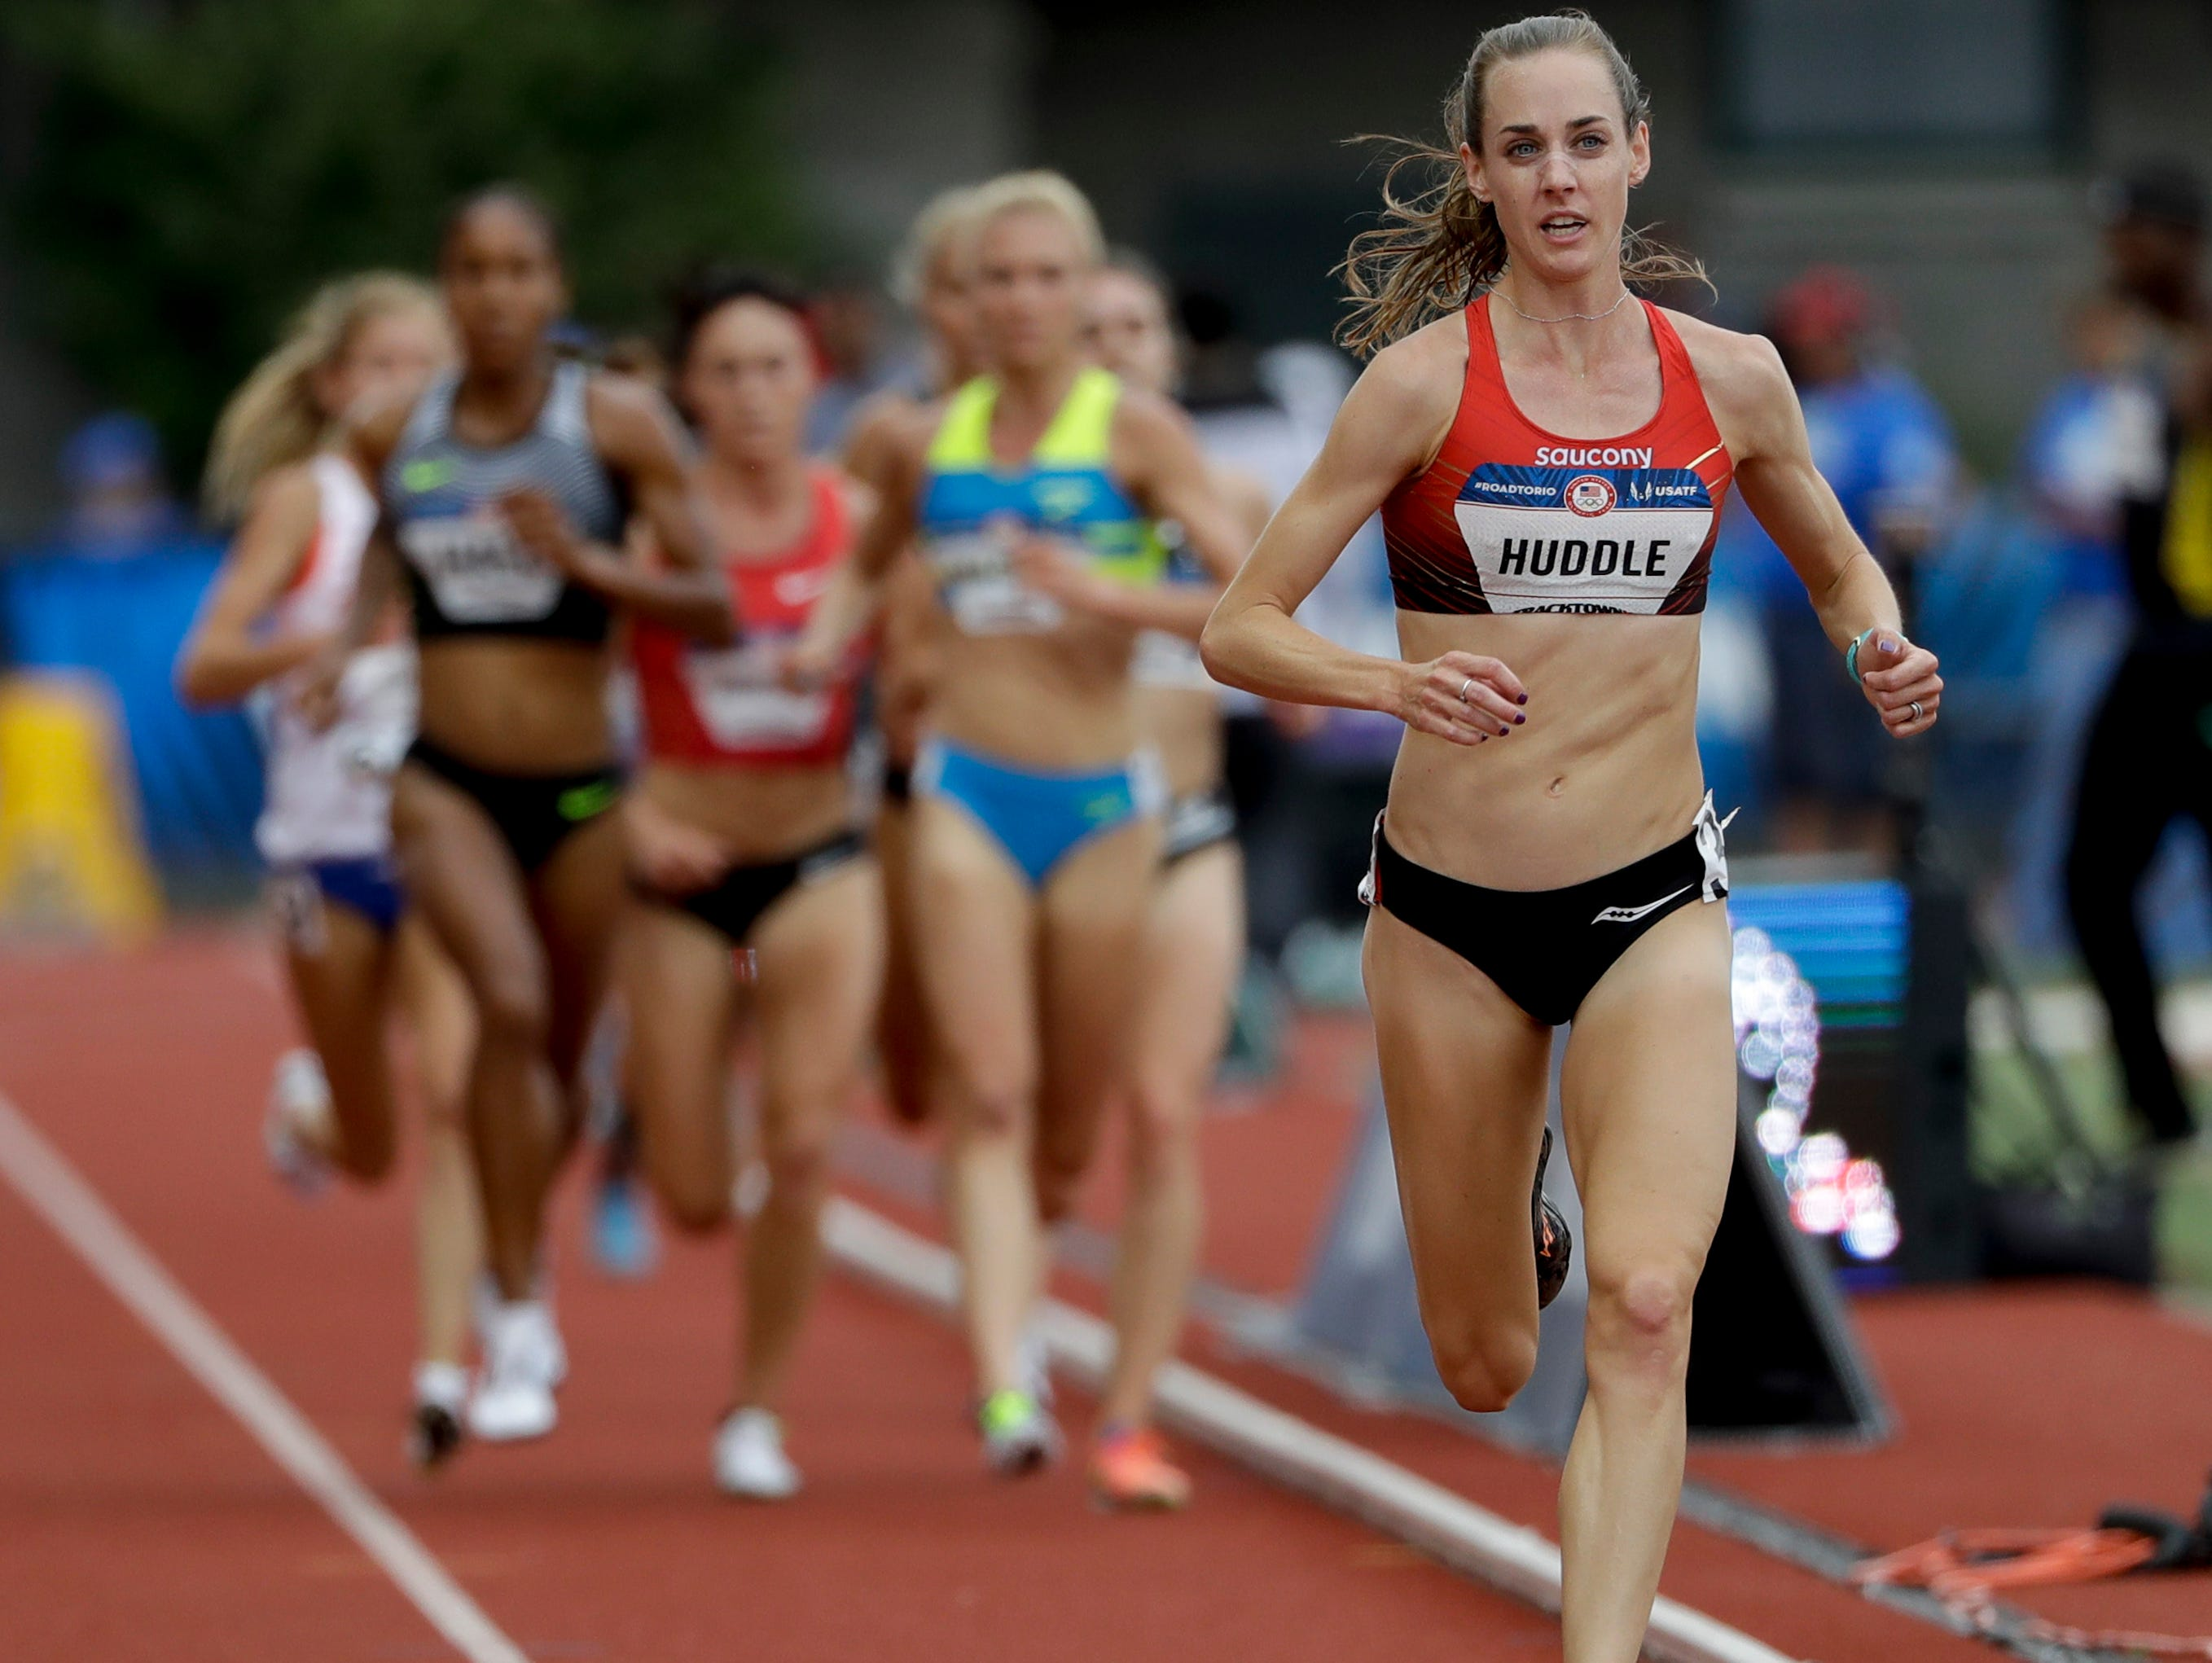 Molly Huddle sets the pace, while former Fort Collins High standout Katie Mackey leads the pack chasing her in the the second of two qualifying heats of the women's 5,000 meters Thursday night at the U.S. Olympic Trials in Eugene, Ore. Huddle and Mackey went 1-2 in the heat while turning in the top qualifying times for Sunday night's final.